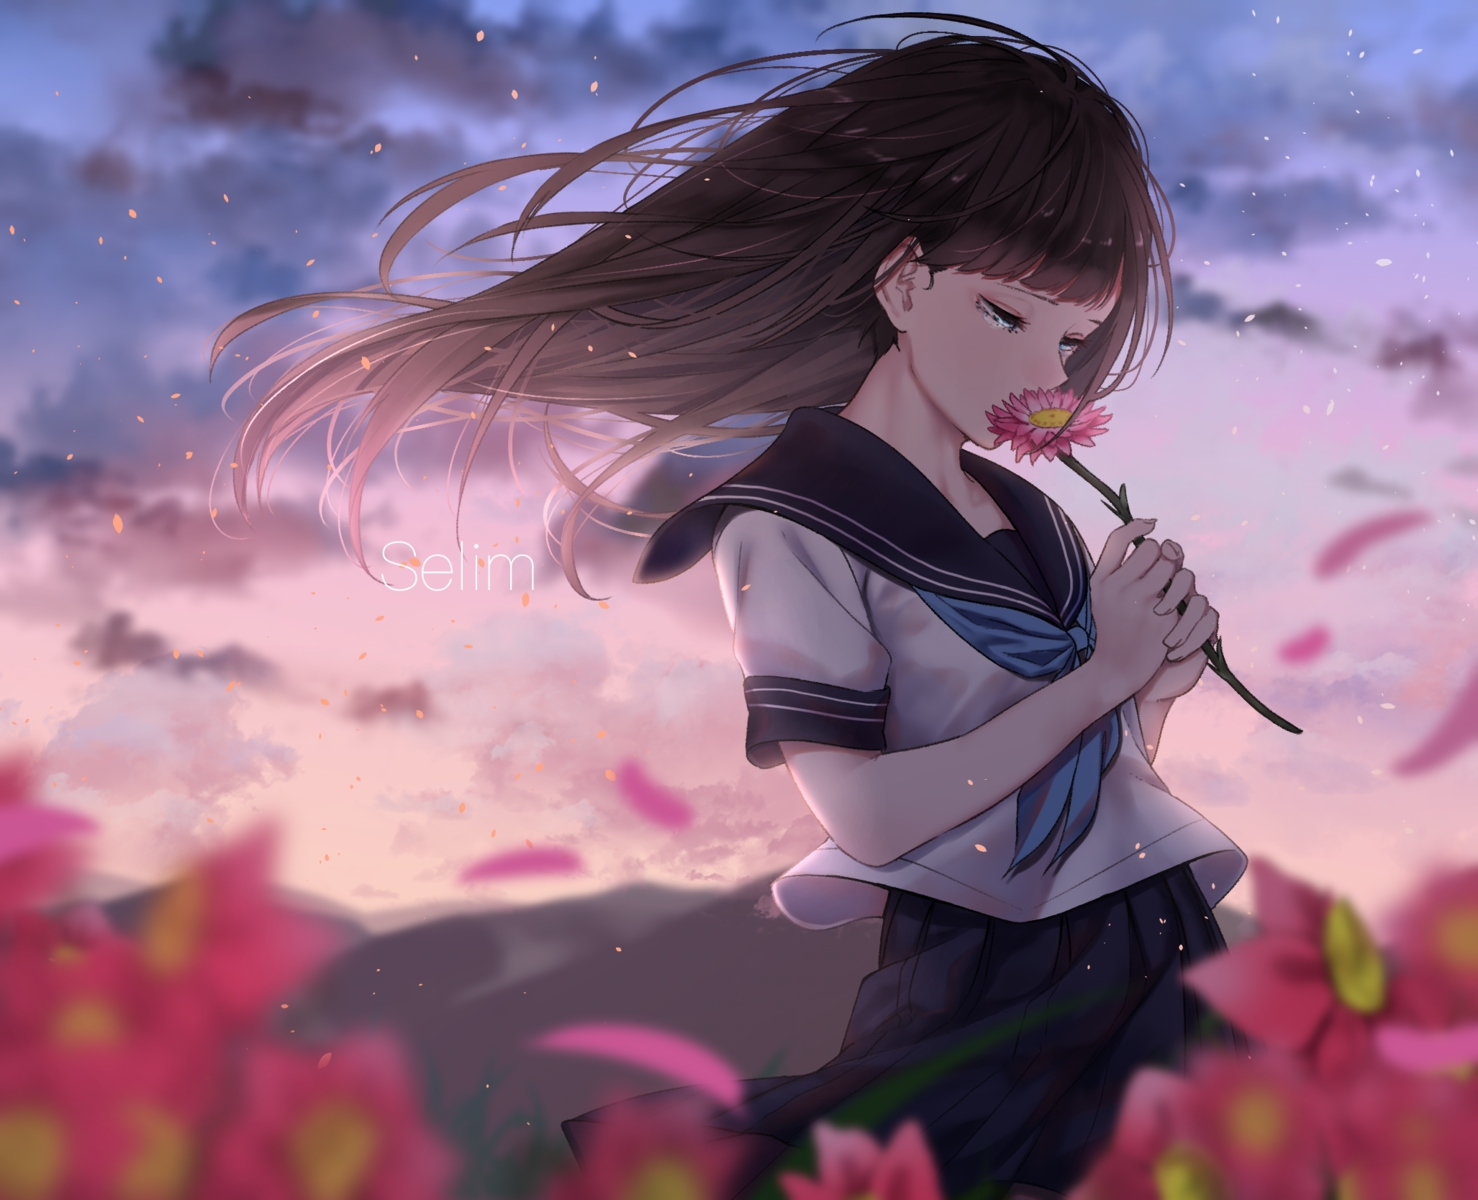 blue_eyes brown_hair flowers long_hair original saitou_(lynx-shrike) school_uniform skirt sky sunset tears